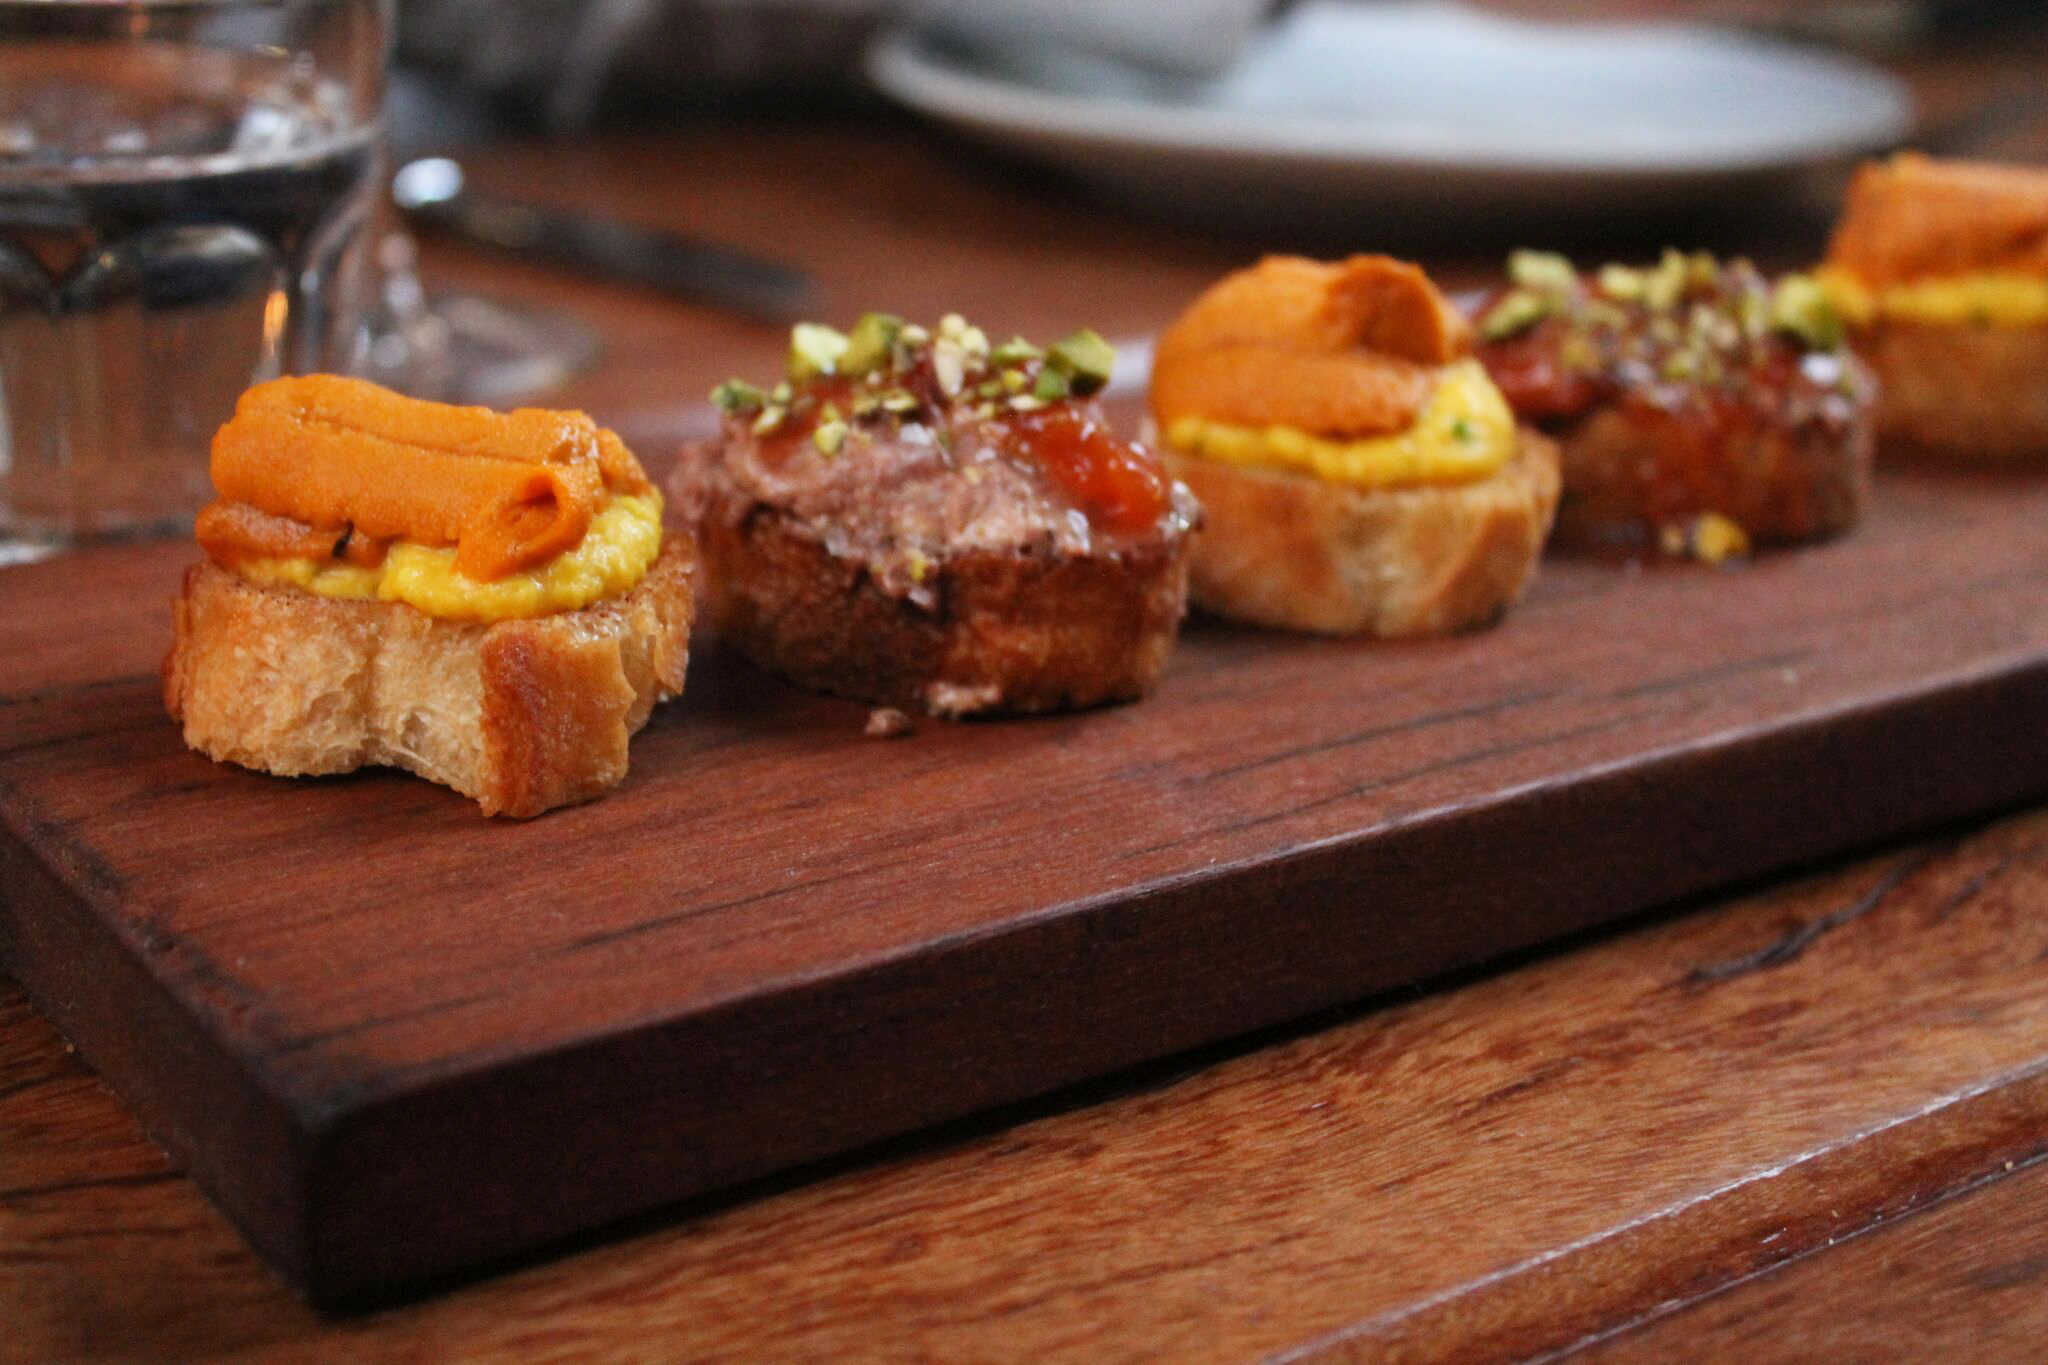 Selection of toasts